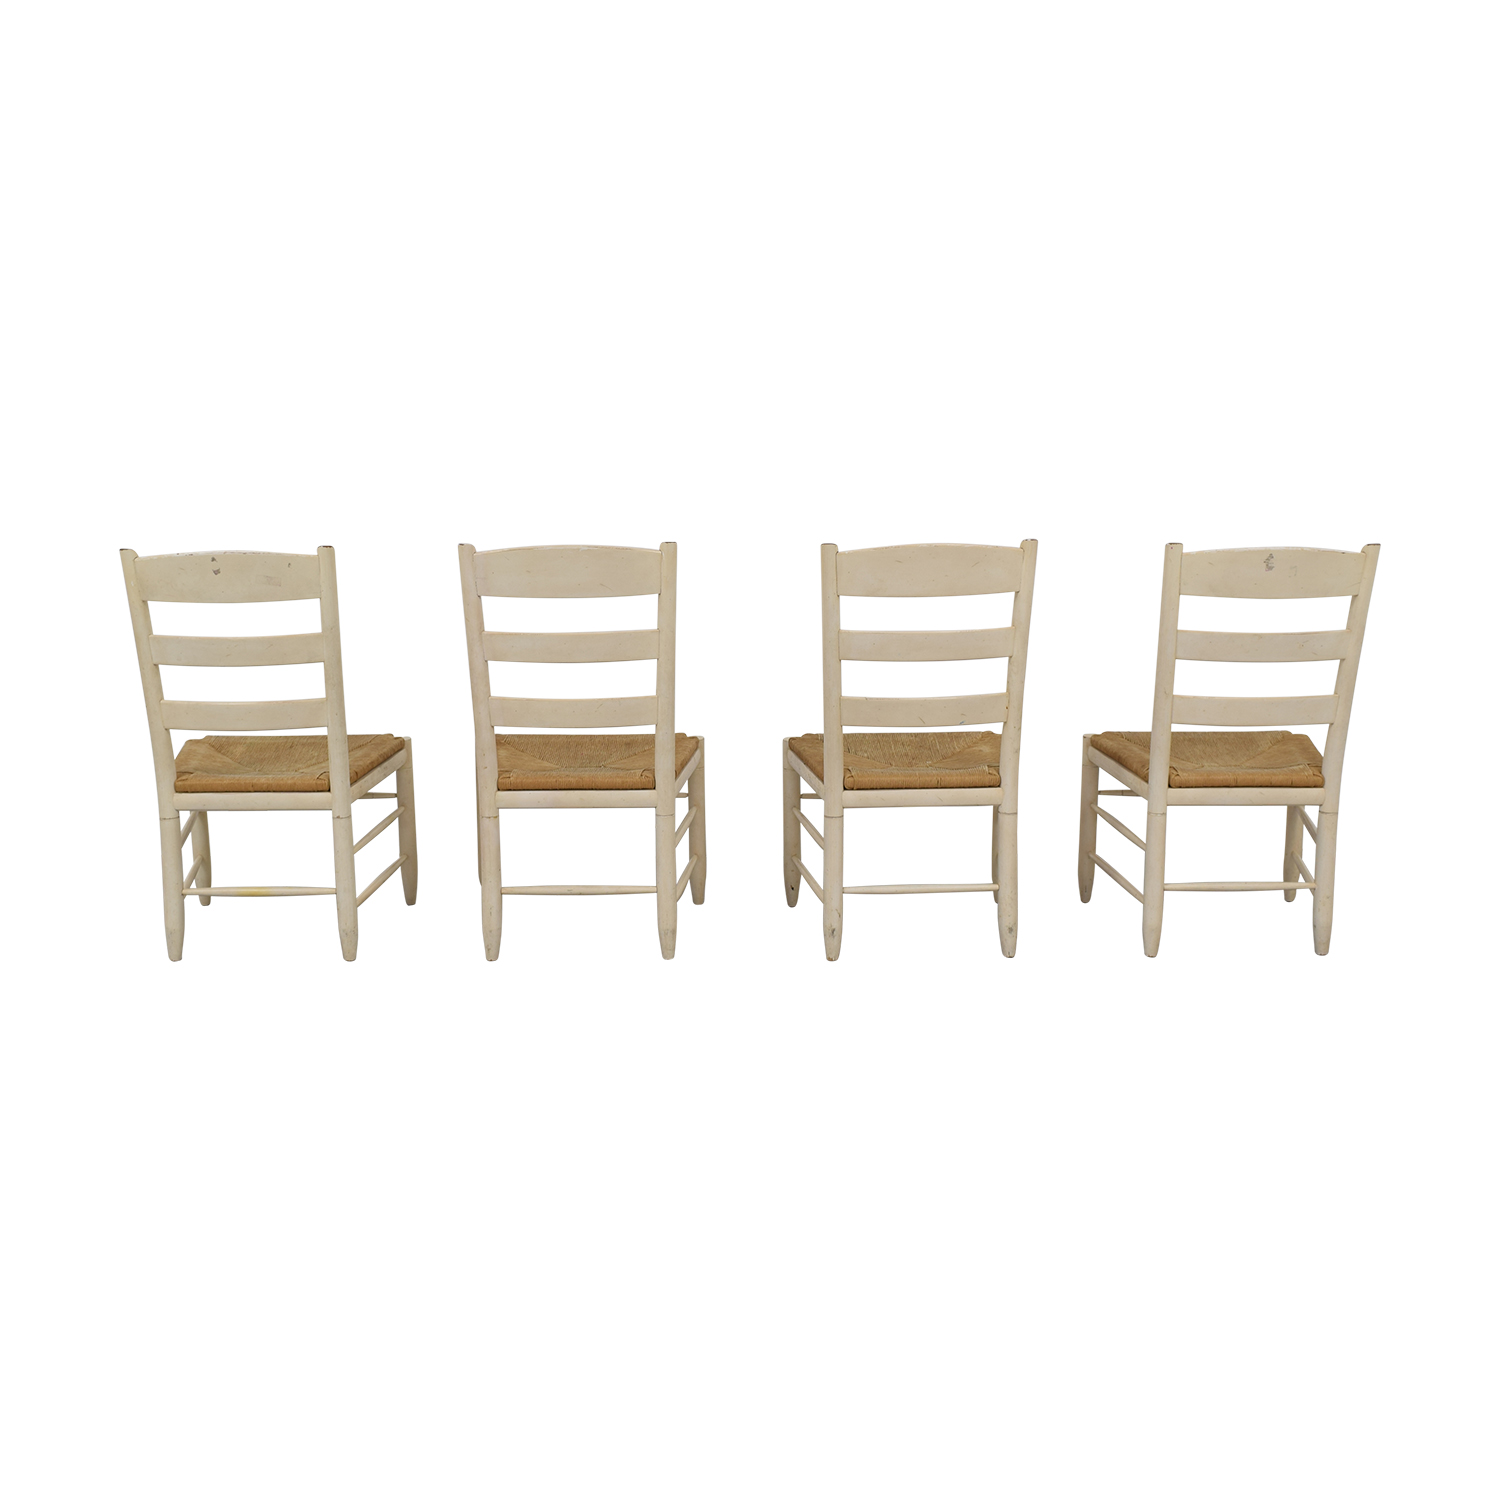 Ethan Allen Ethan Allen New Country Ladderback White Side Chairs White